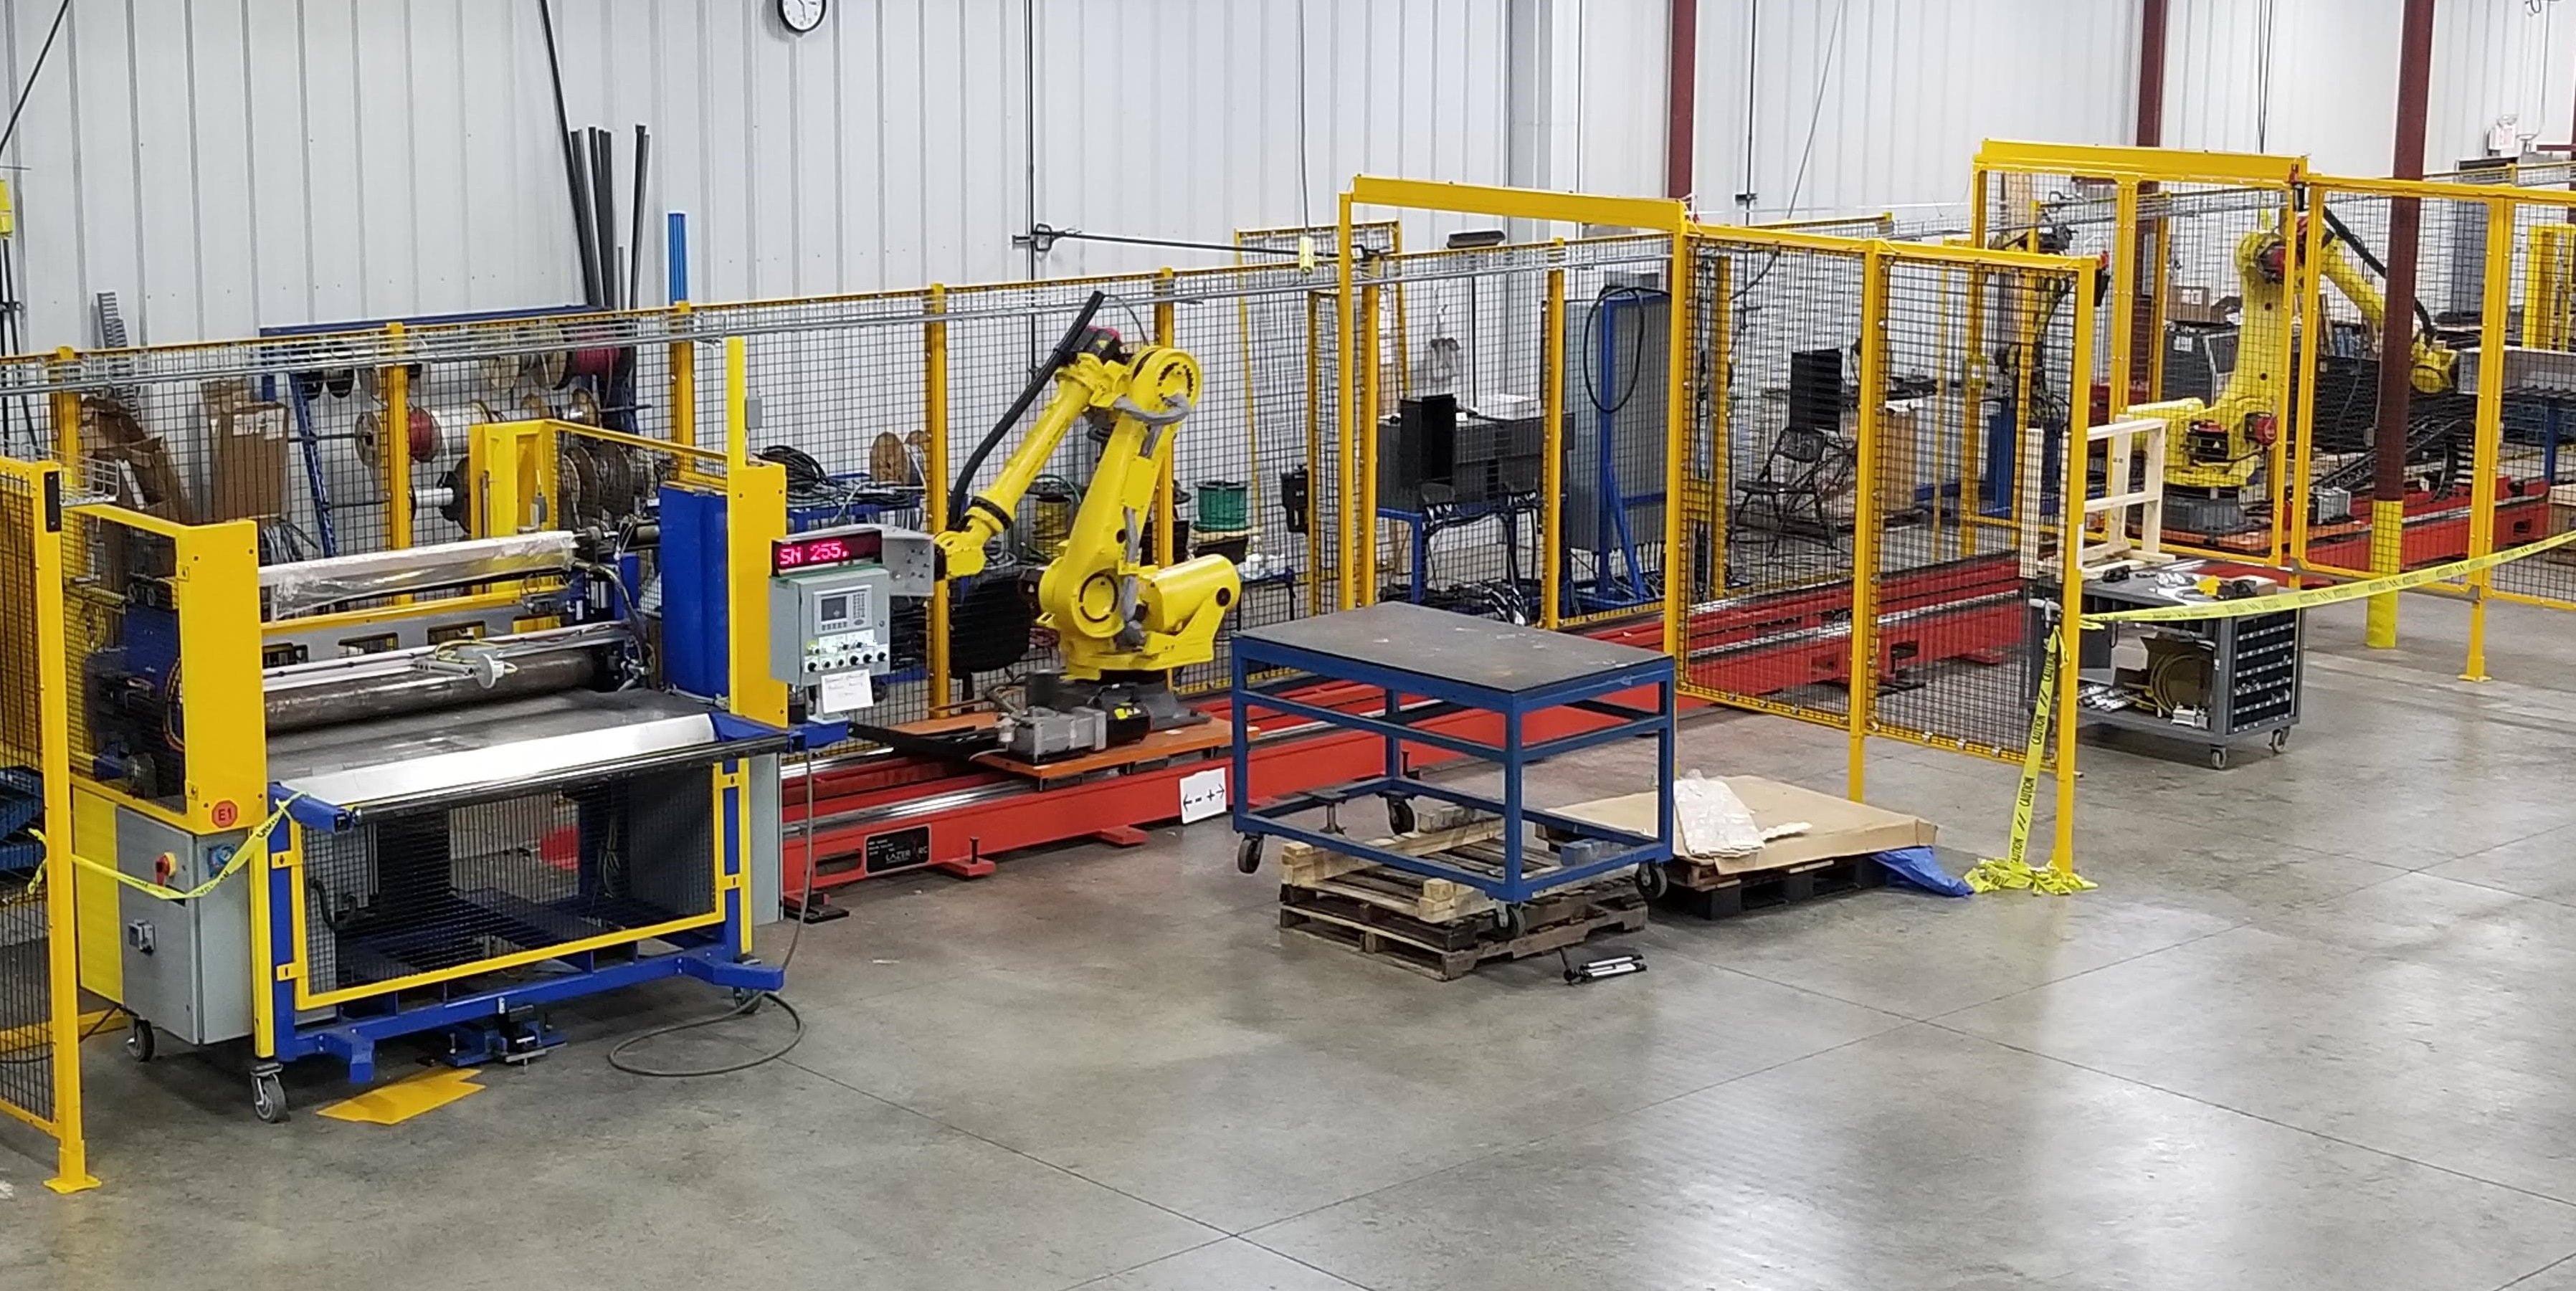 Robot Transfer Unit - RTU - for Material Handling